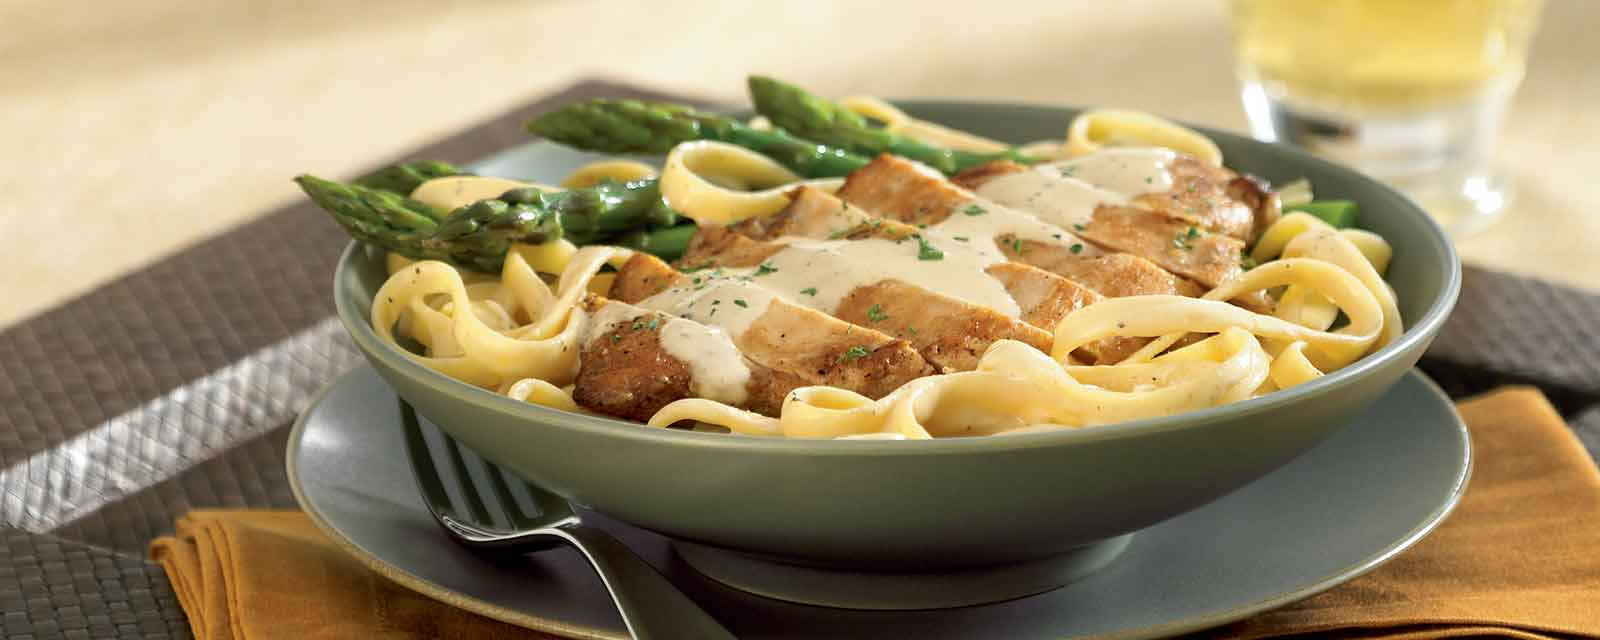 Fettuccine with Chicken Breasts